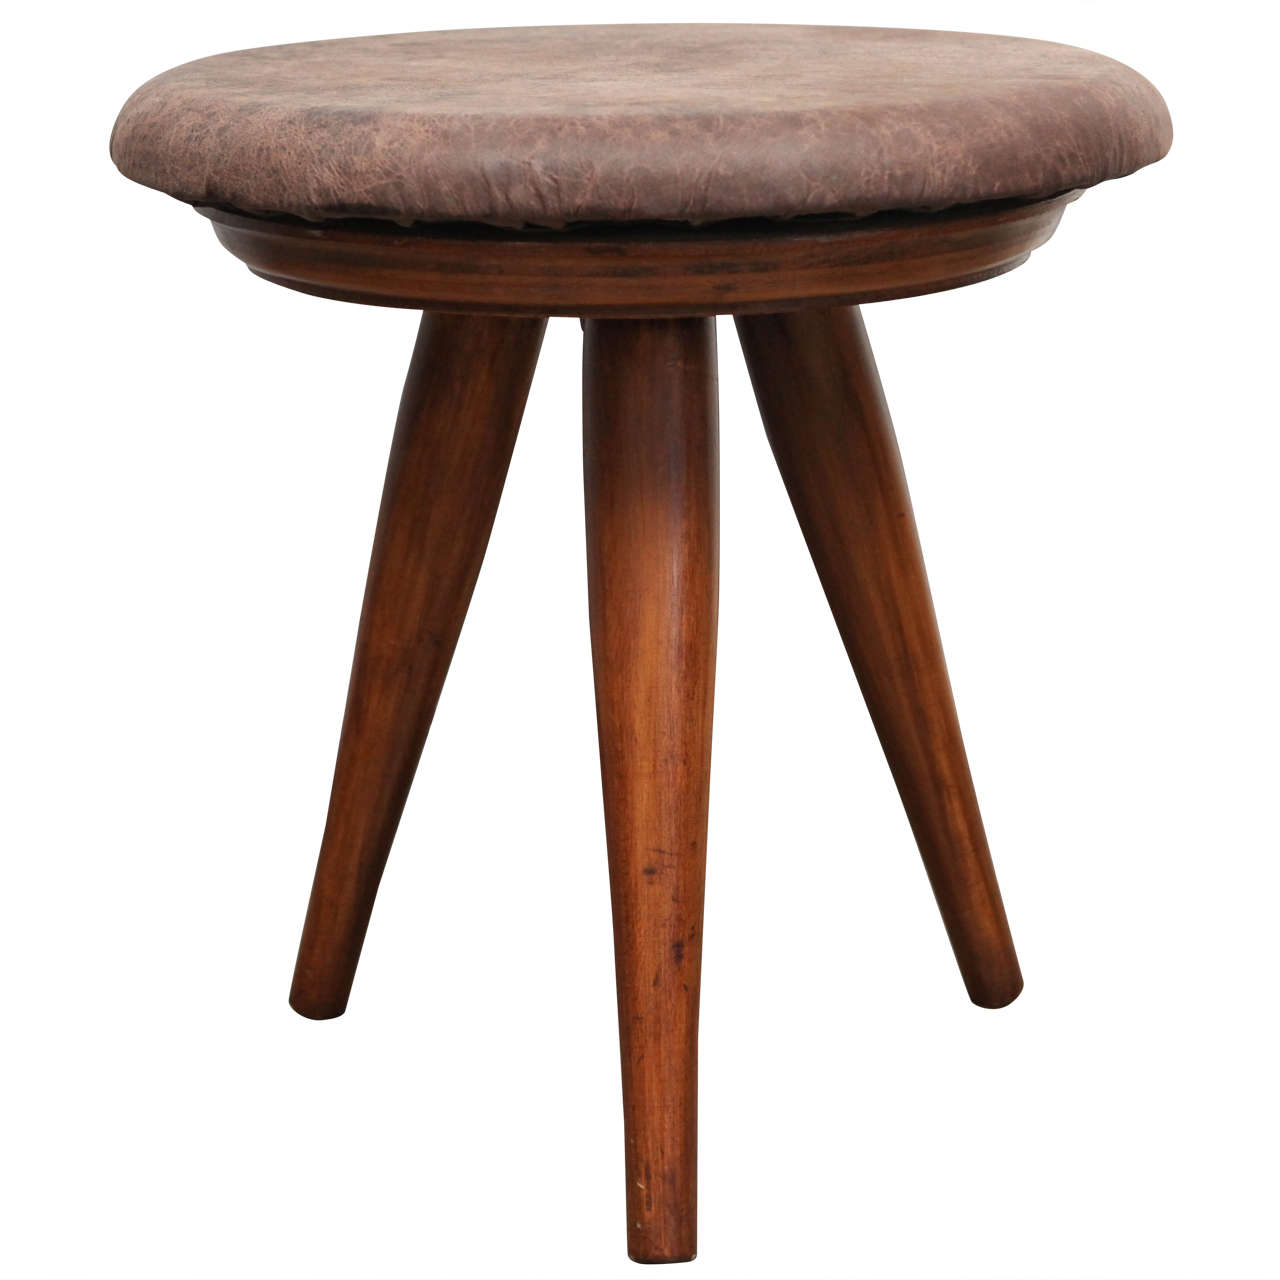 Modern piano stool - Mid Century Modern Tripod Swivel Stool With Brown Leather Upholstery